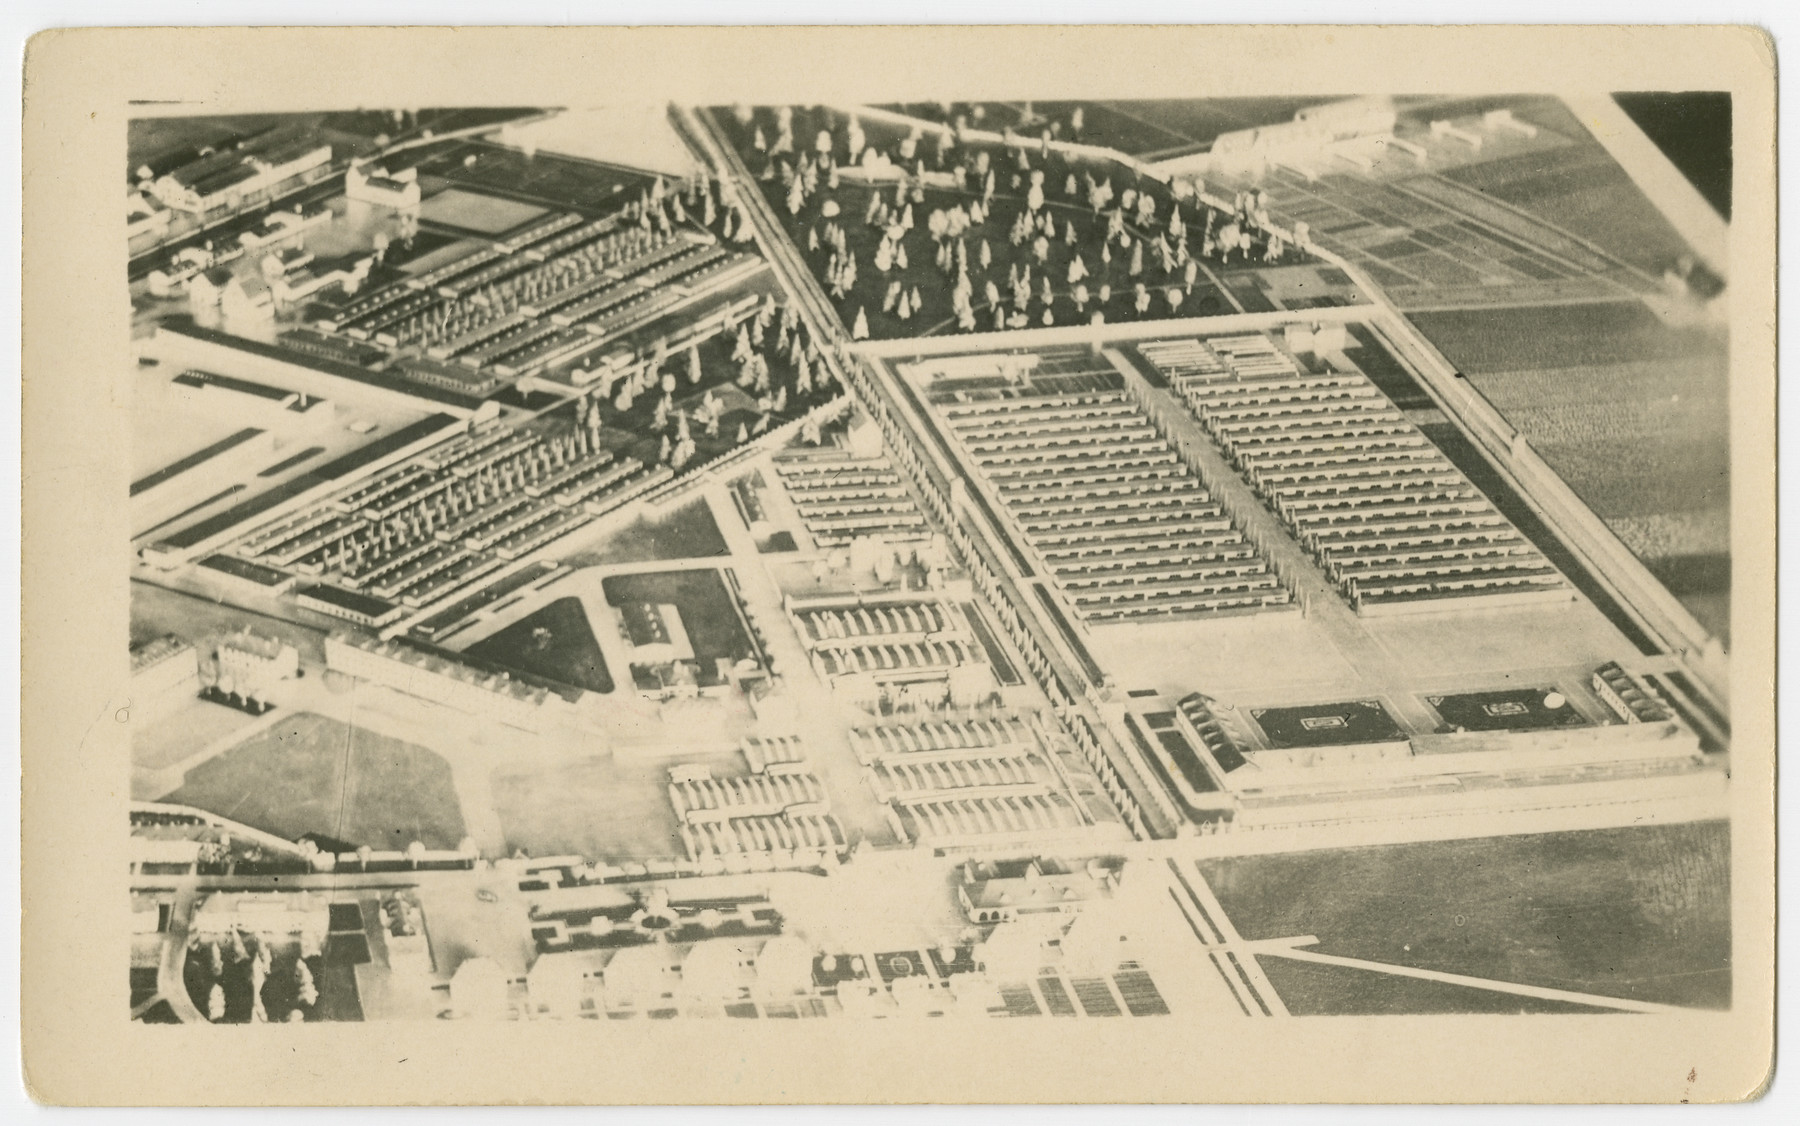 Postwar architectural model of the former Dachau concentration camp.